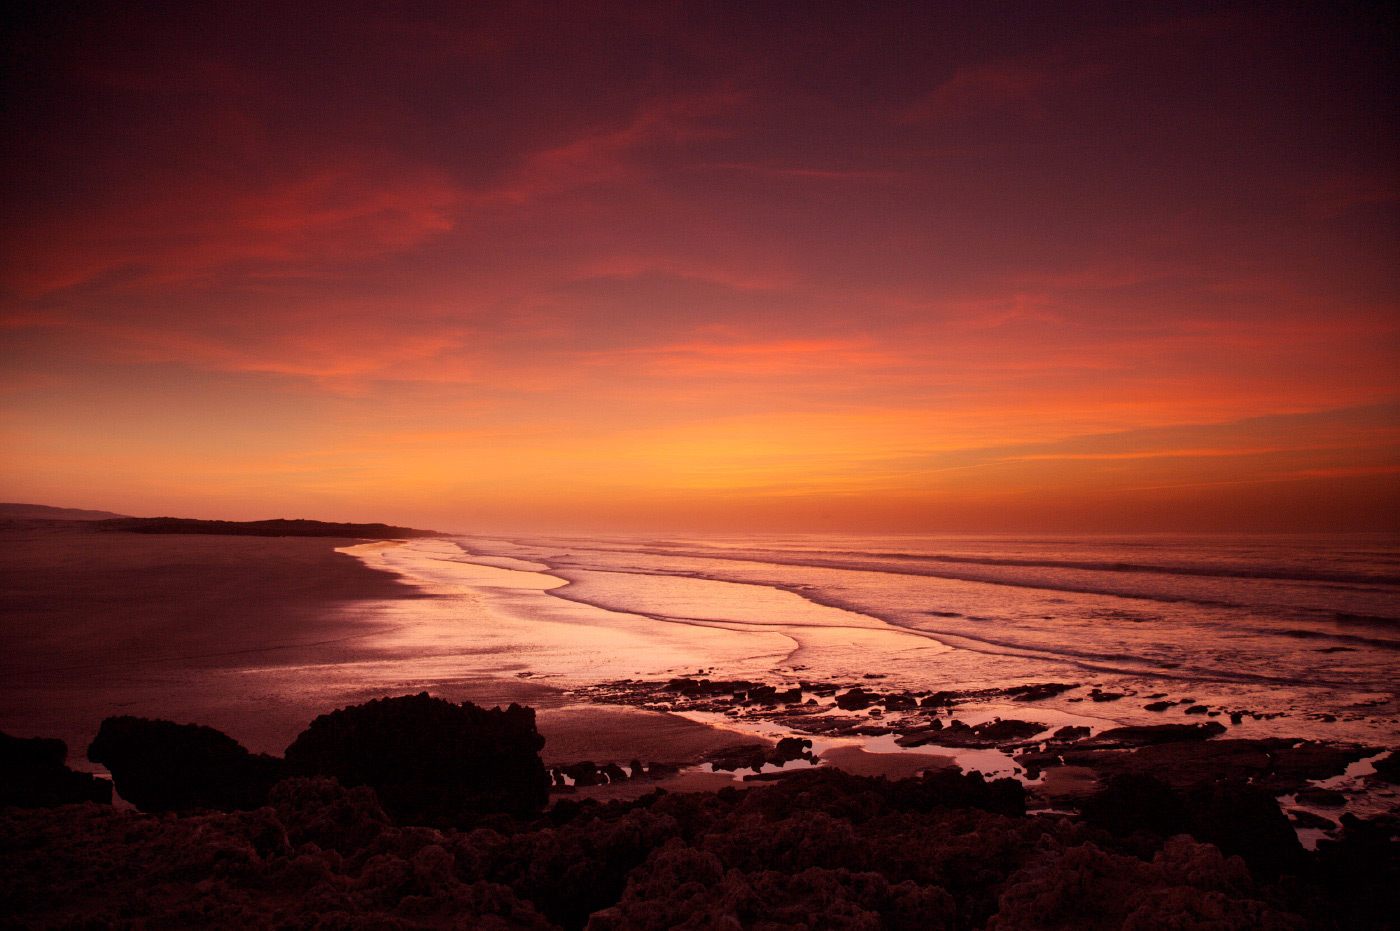 <p>Stunning sunset at an empty beach on the West coast of Morocco.</p>